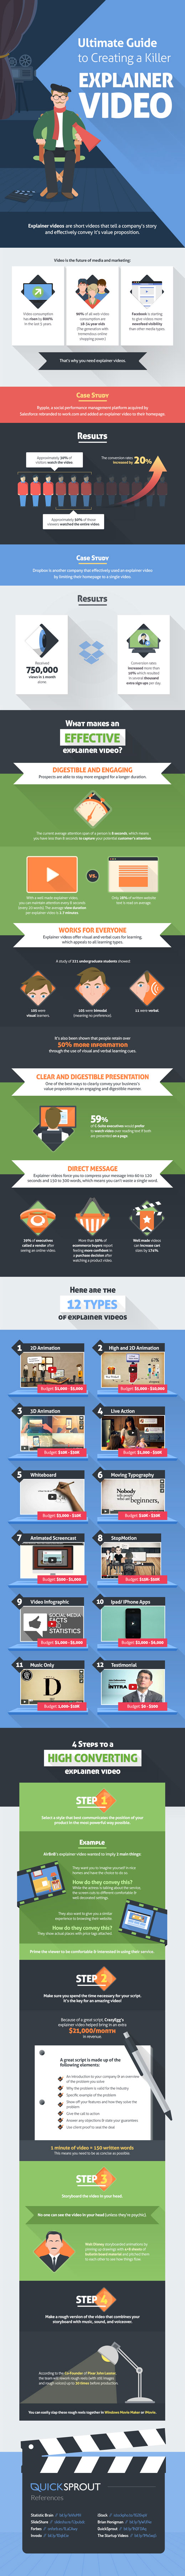 Video infographic creator